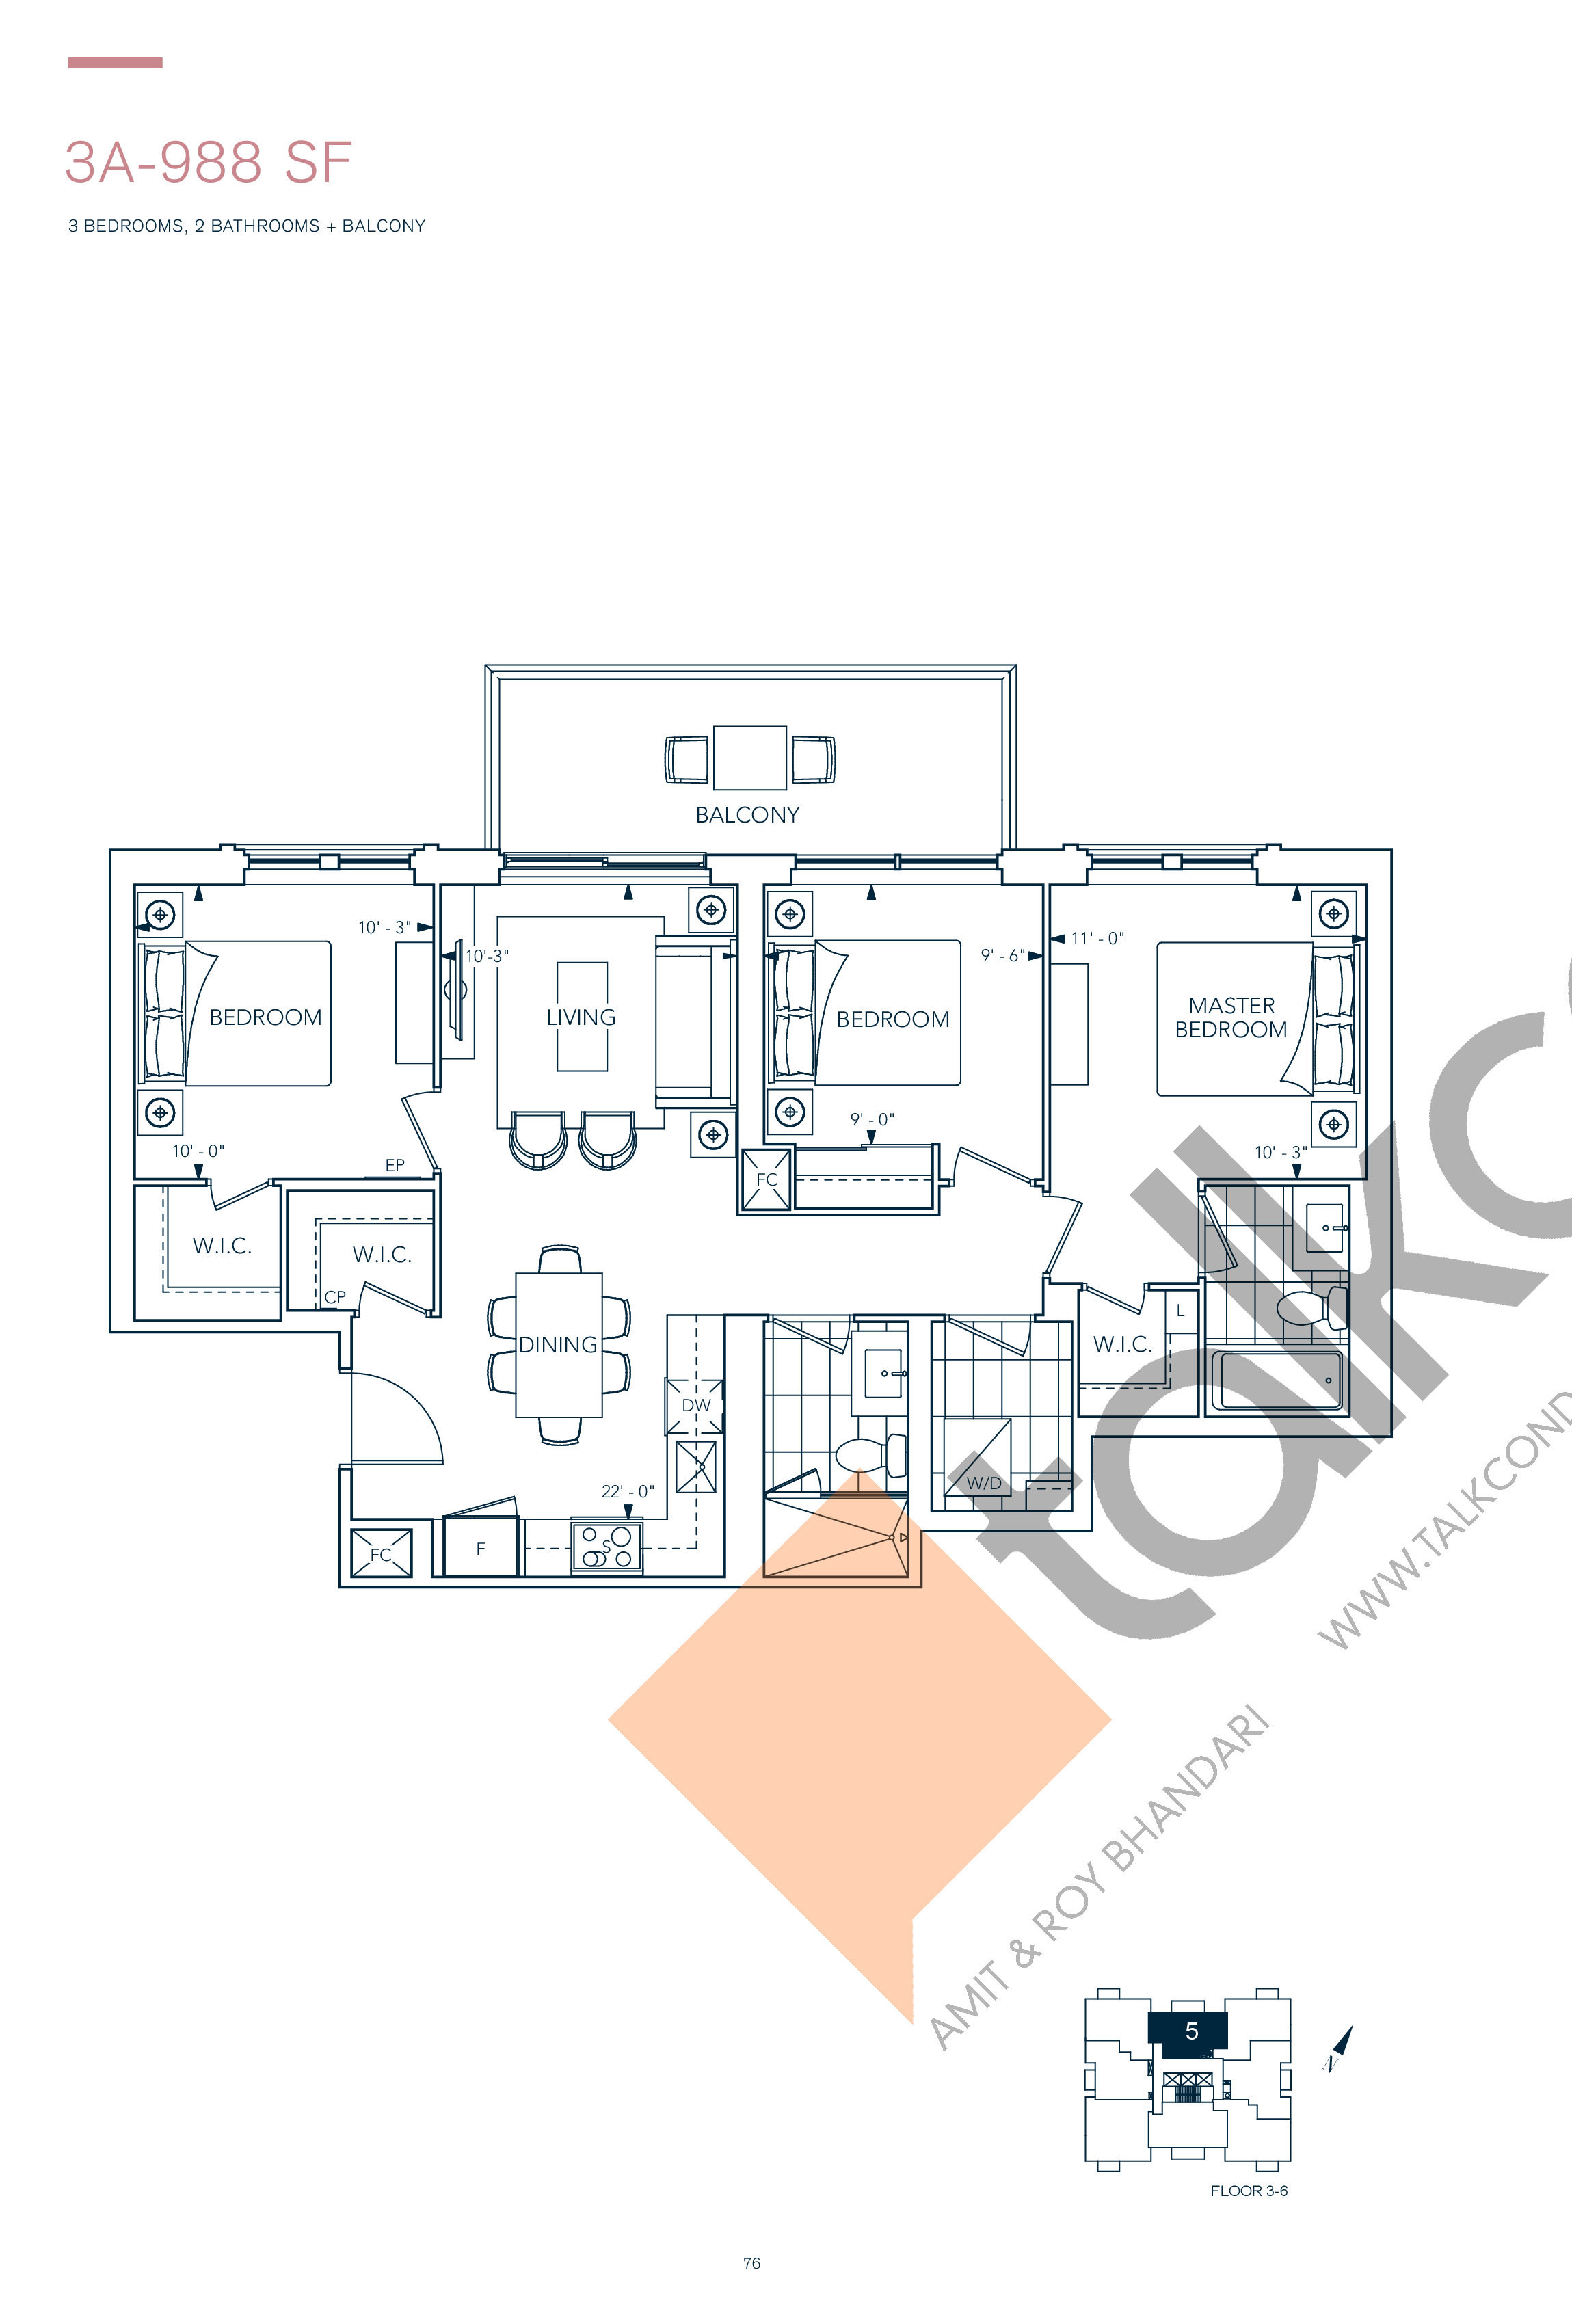 3A-988 SF Floor Plan at Evermore Condos - 988 sq.ft